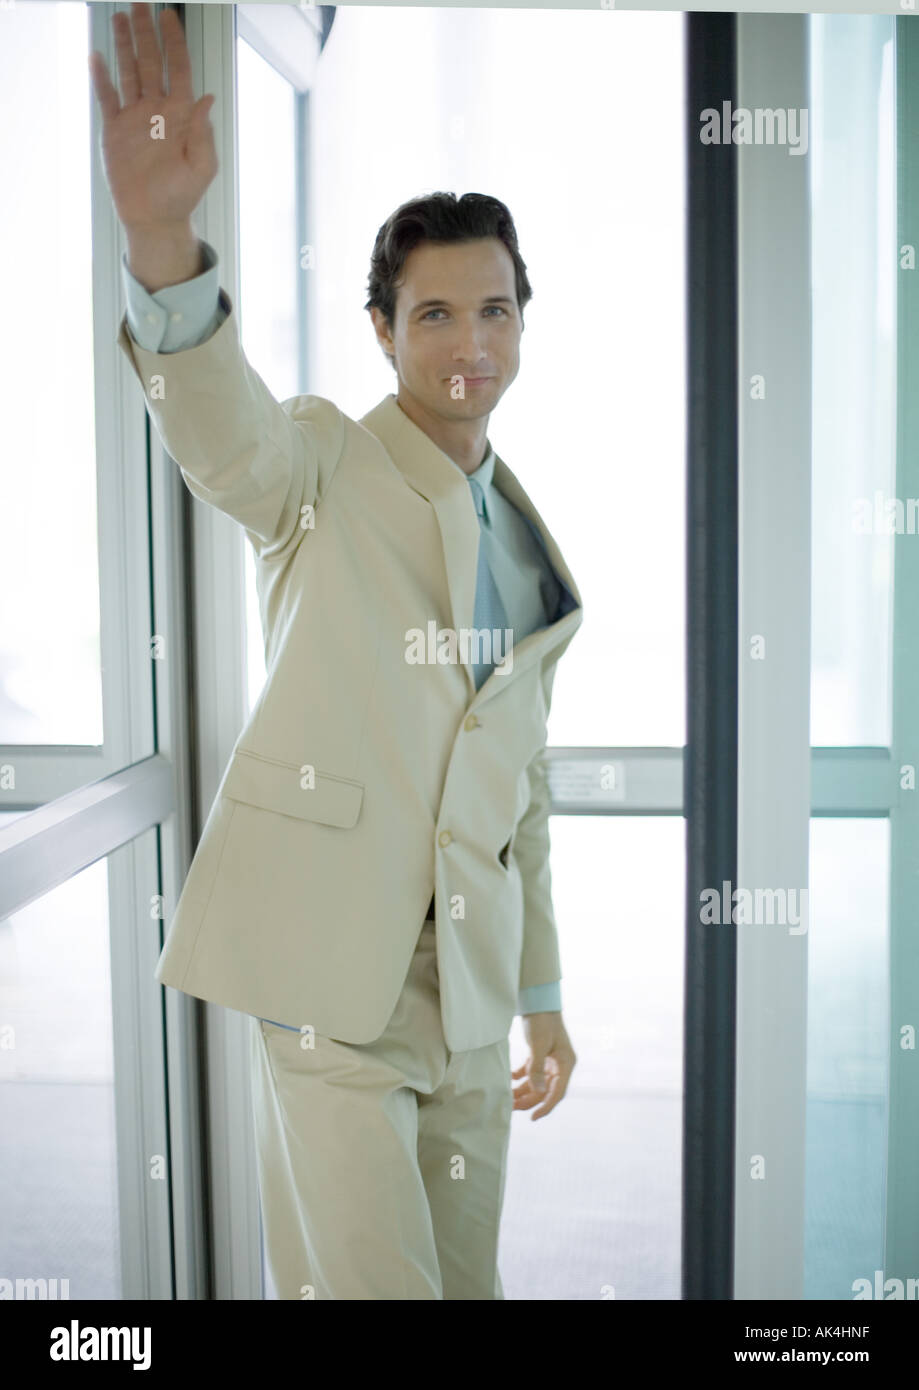 Businessman standing by door, waving - Stock Image